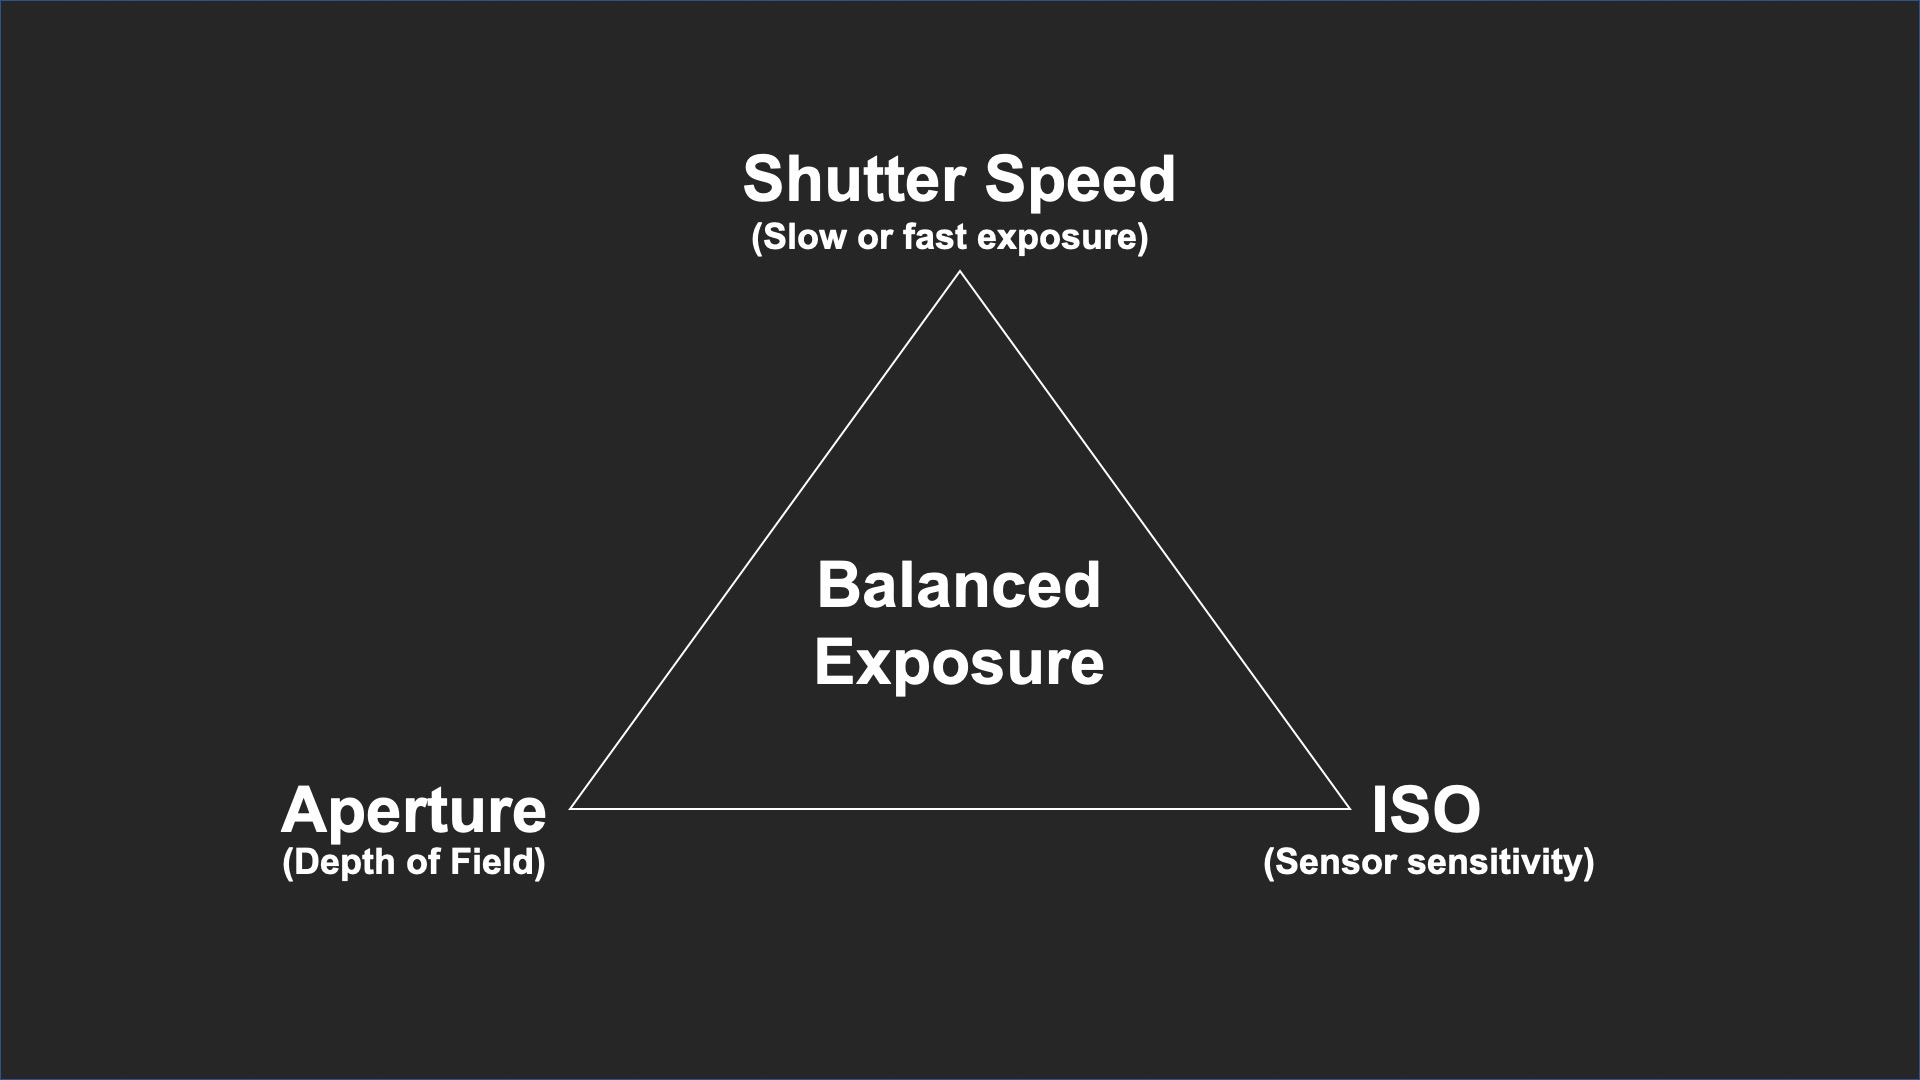 Diagram showing the concept of the exposure triangle